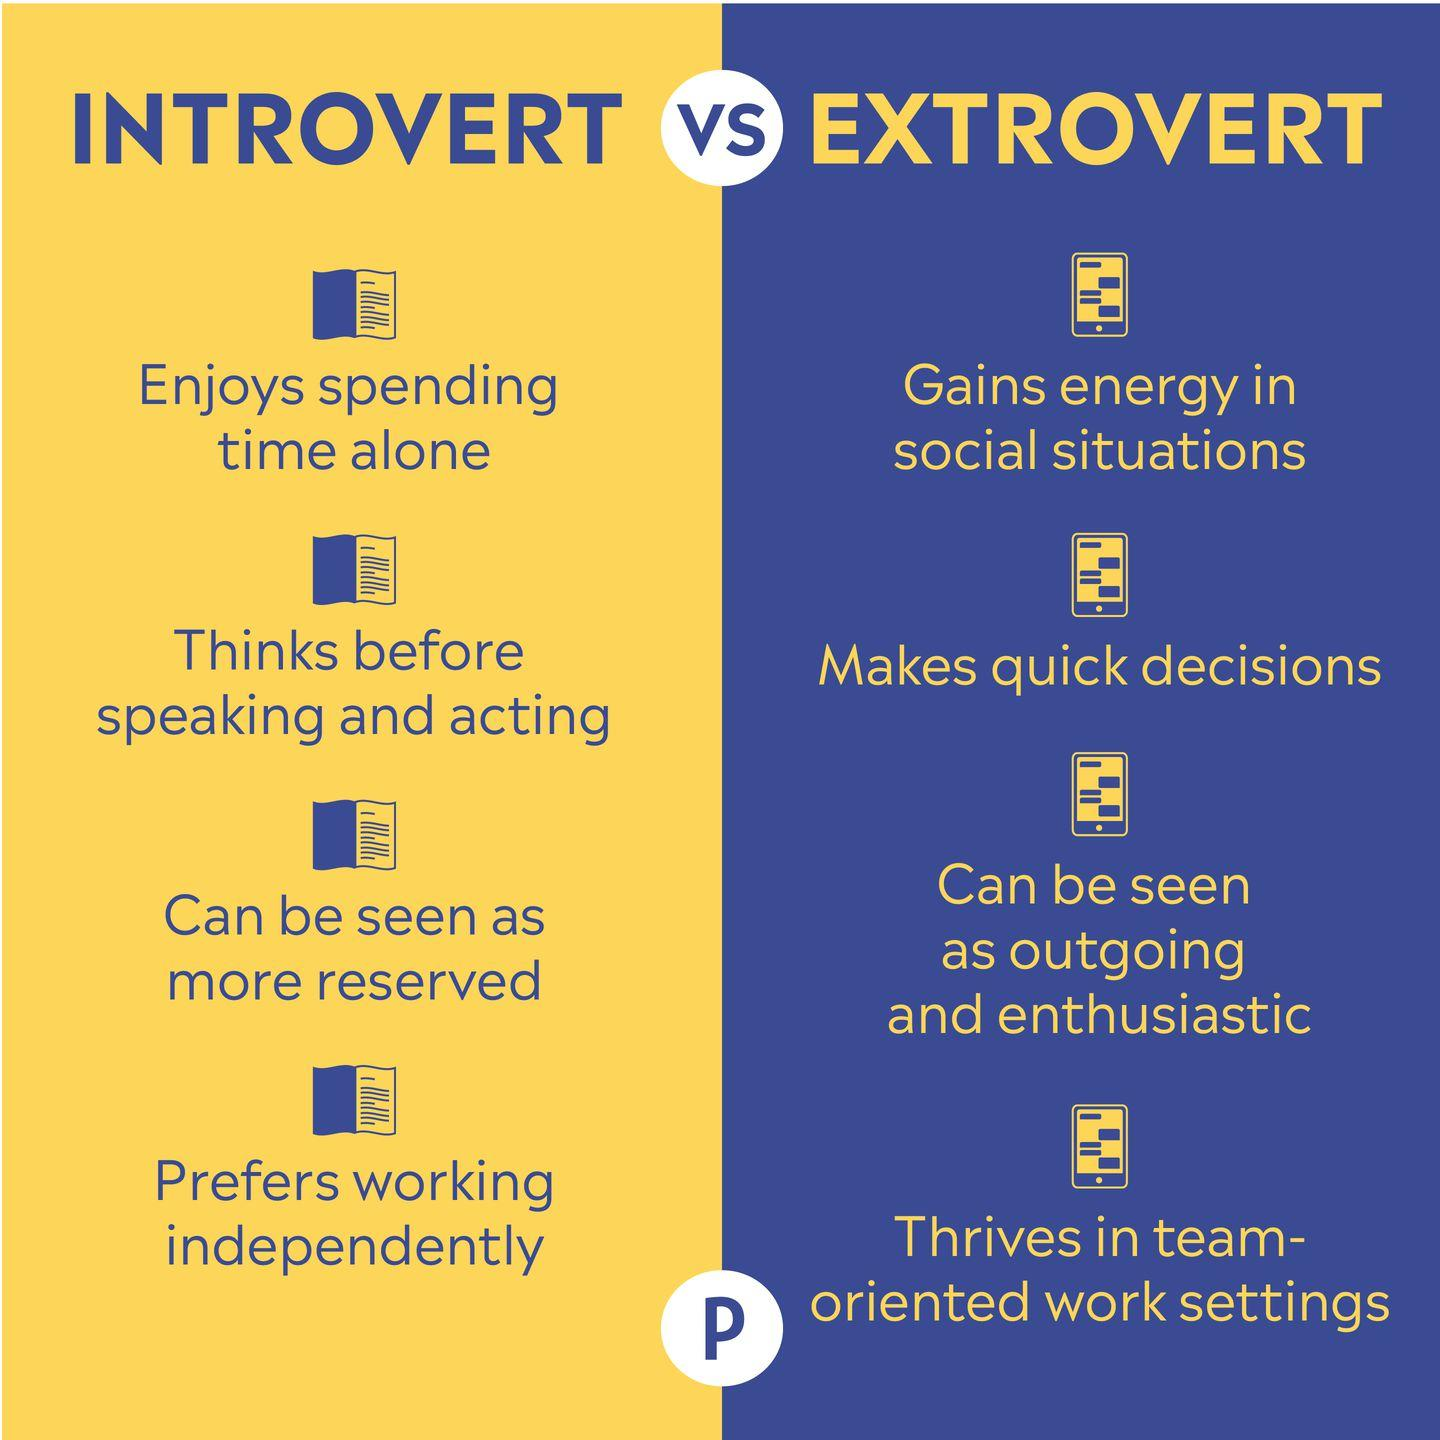 Not an Introvert or an Extrovert? You're Probably an Ambivert